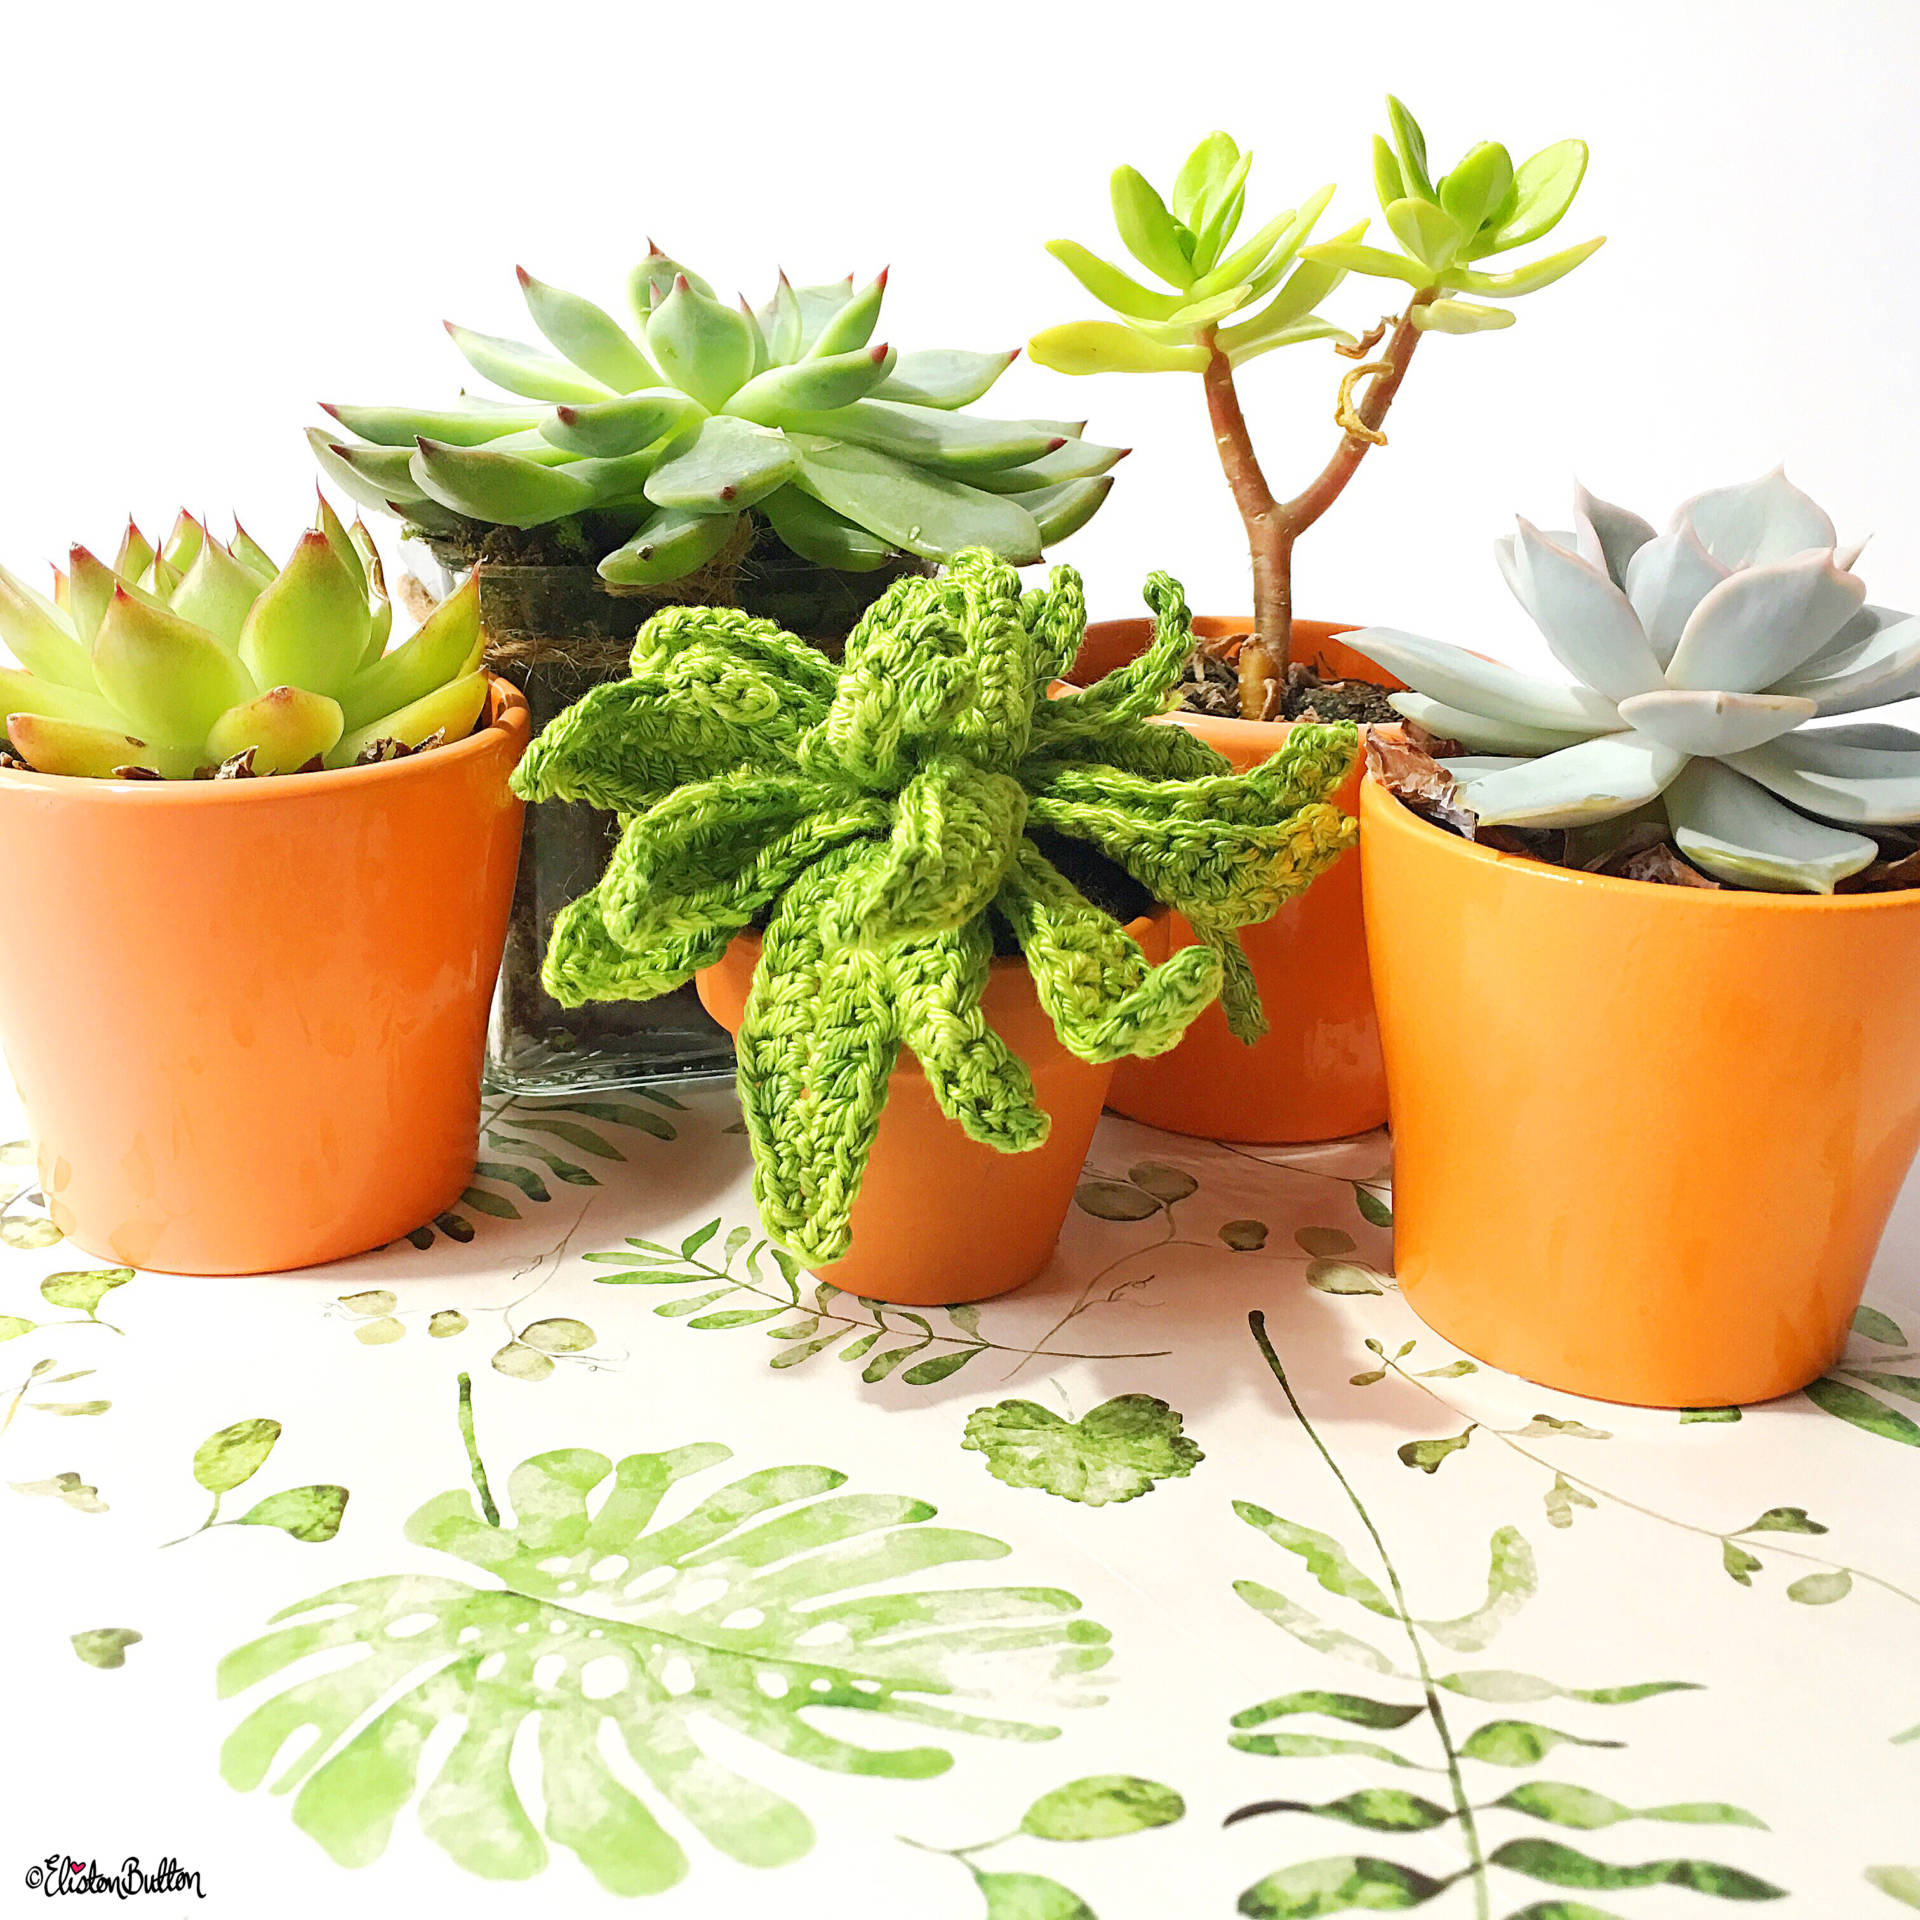 Succulents and a Crochet Succulent on a Beautiful Watercolour Plant Illustration - Around Here…September 2016 at www.elistonbutton.com - Eliston Button - That Crafty Kid – Art, Design, Craft & Adventure.